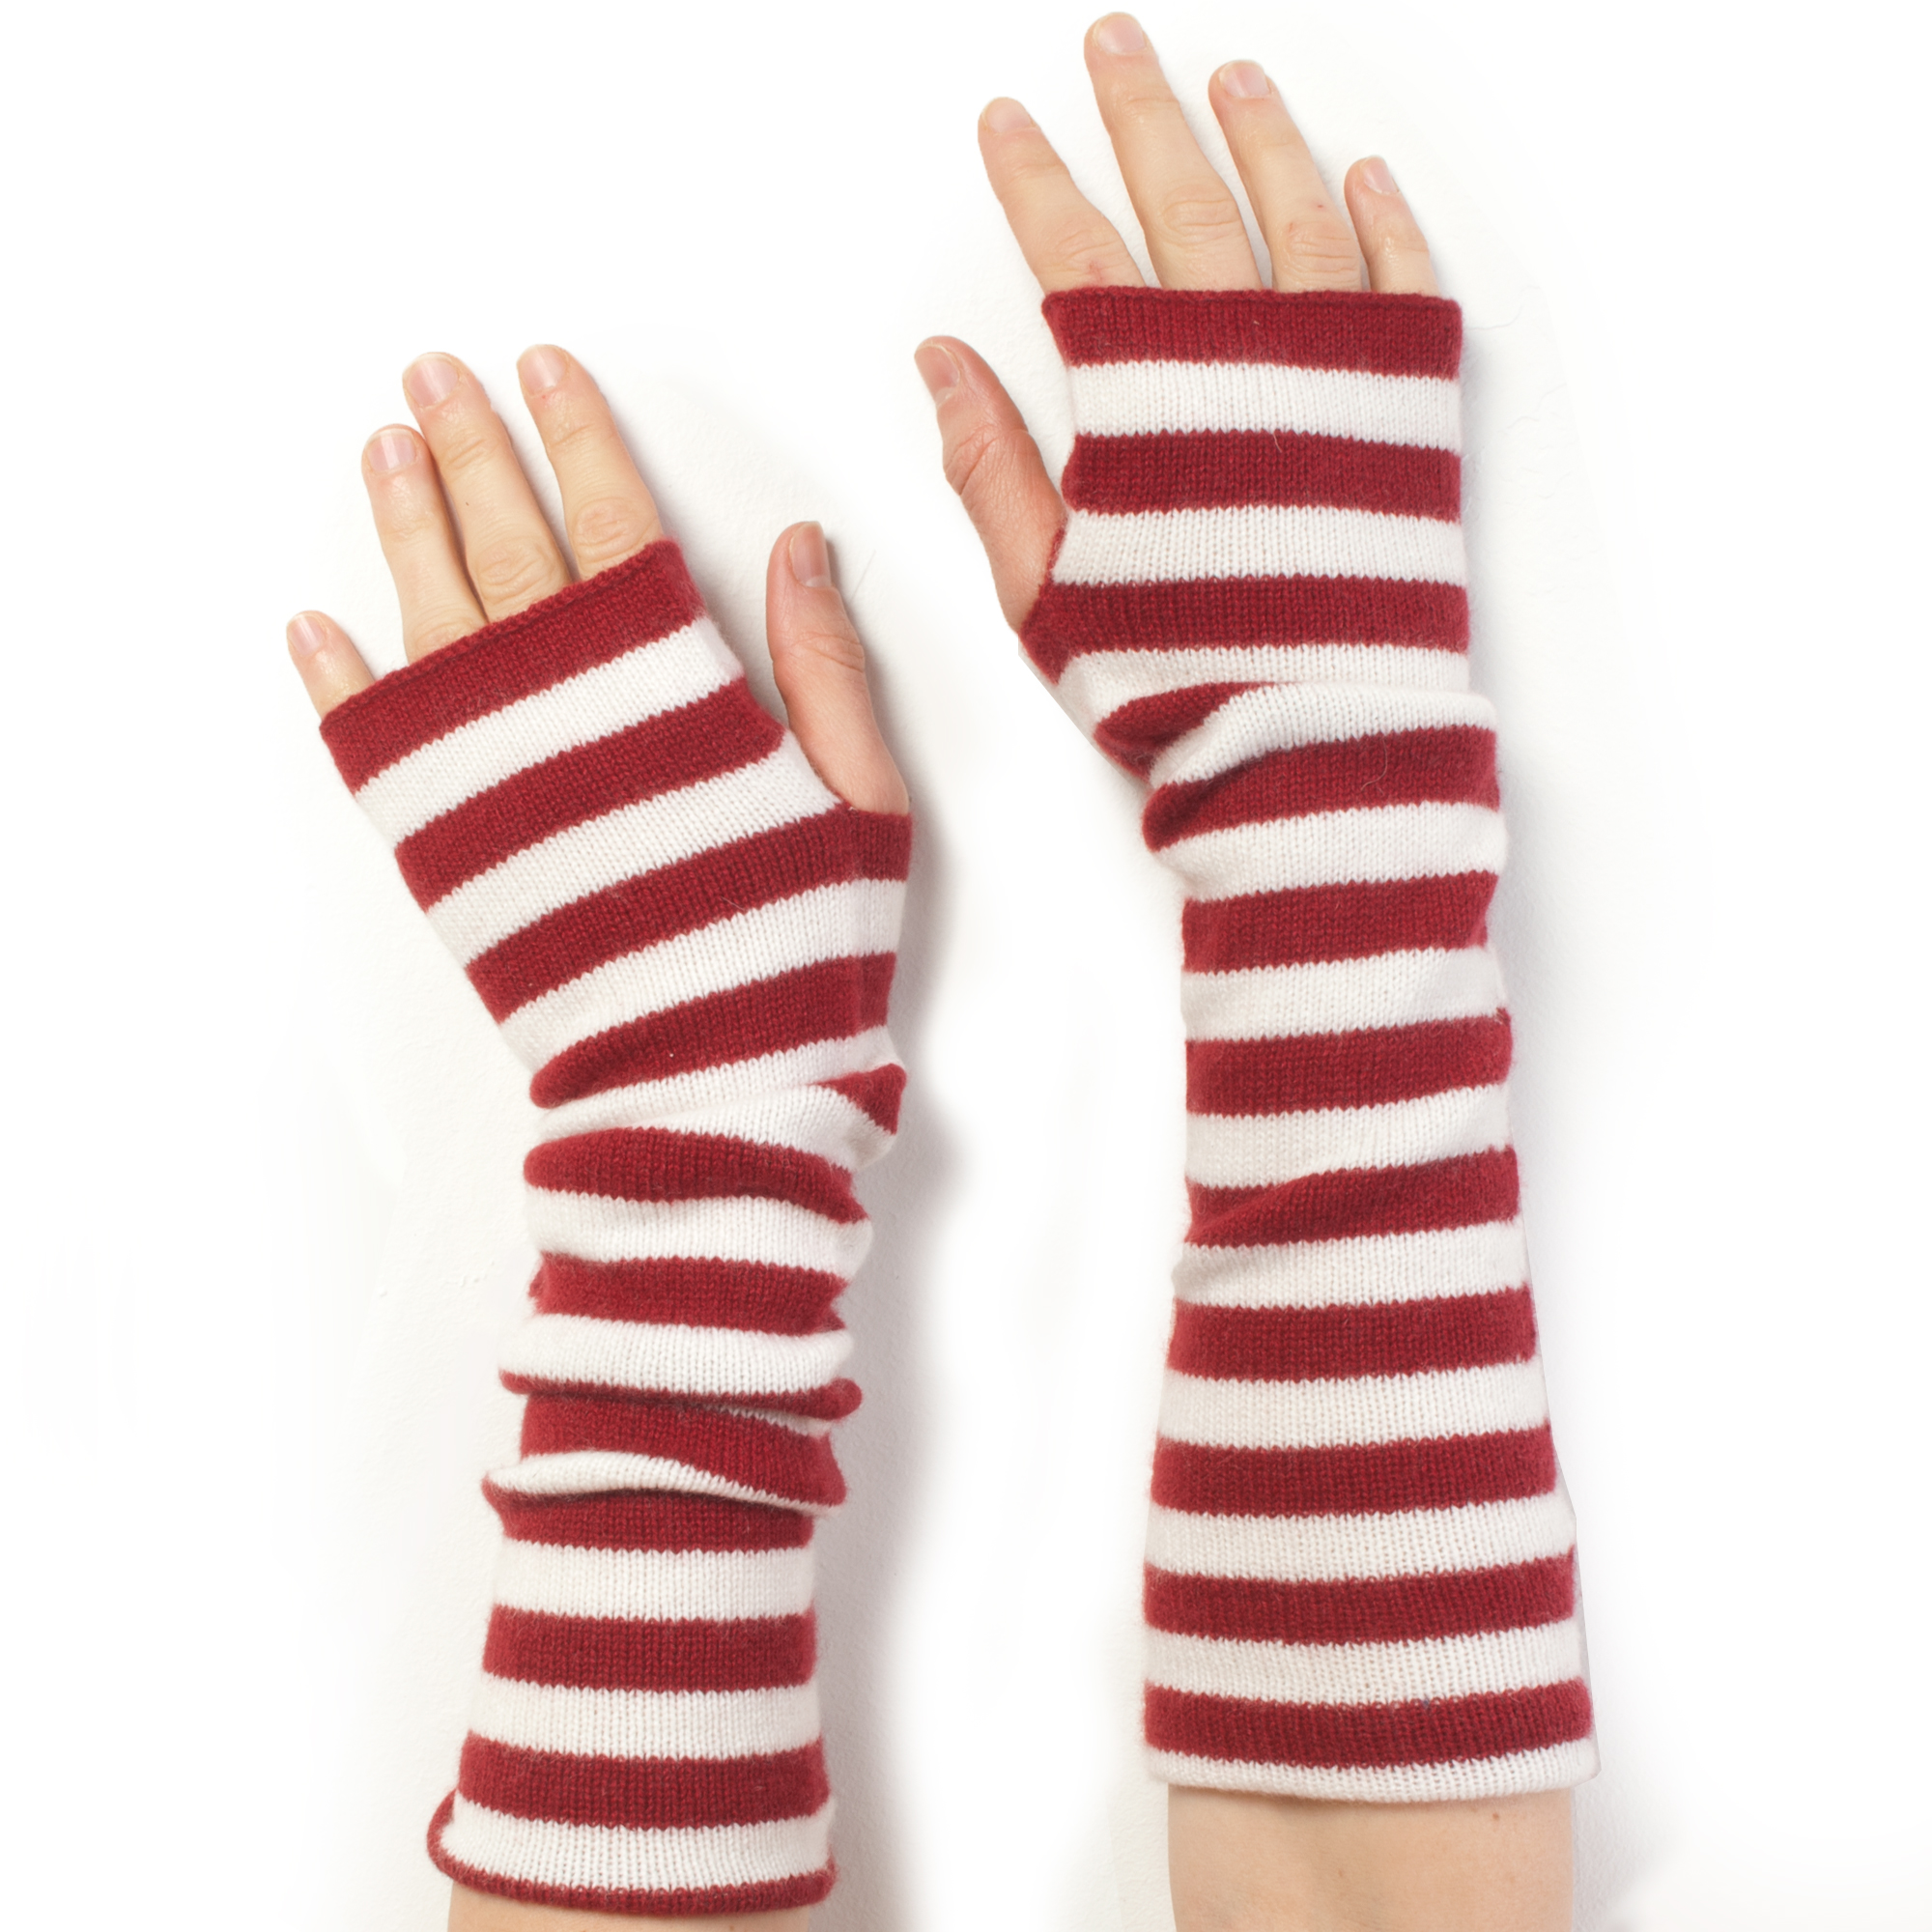 Stripey Wristwarmers - 100% Cashmere - Rio Red/White